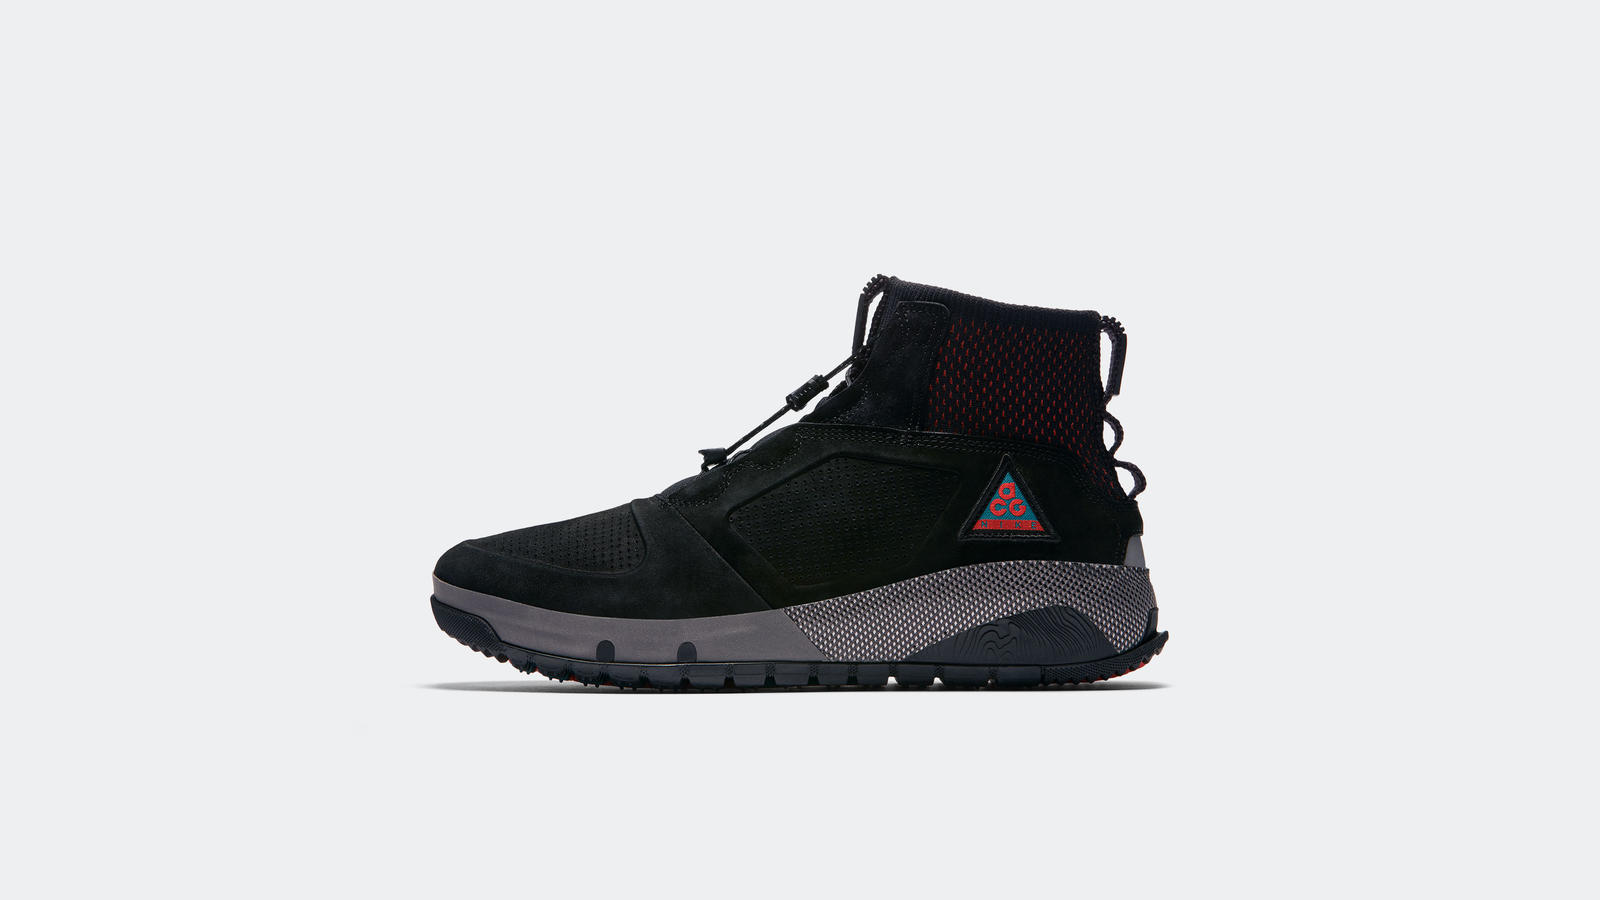 96c1163a9 Nike ACG Collection Holiday 2018 - Nike News